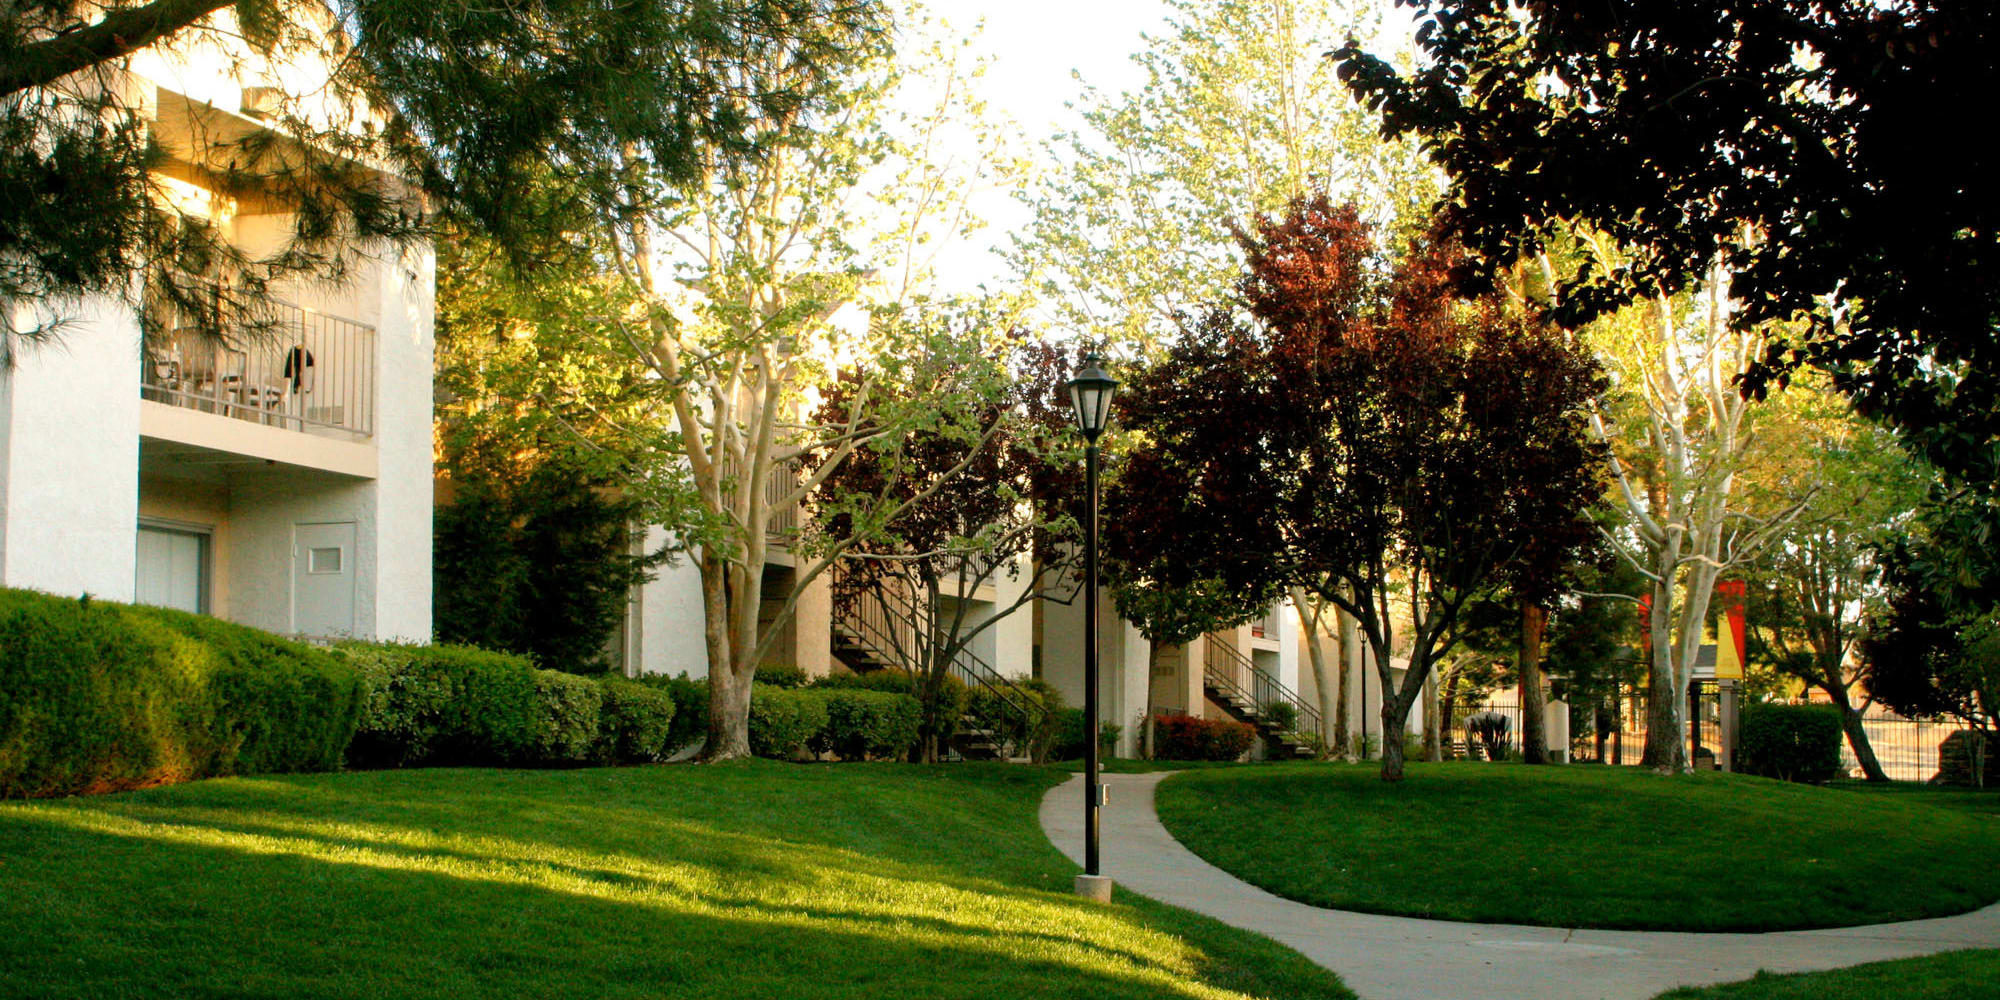 Mature trees providing afternoon shade on the green grass outside resident buildings at Mountain Vista in Victorville, California